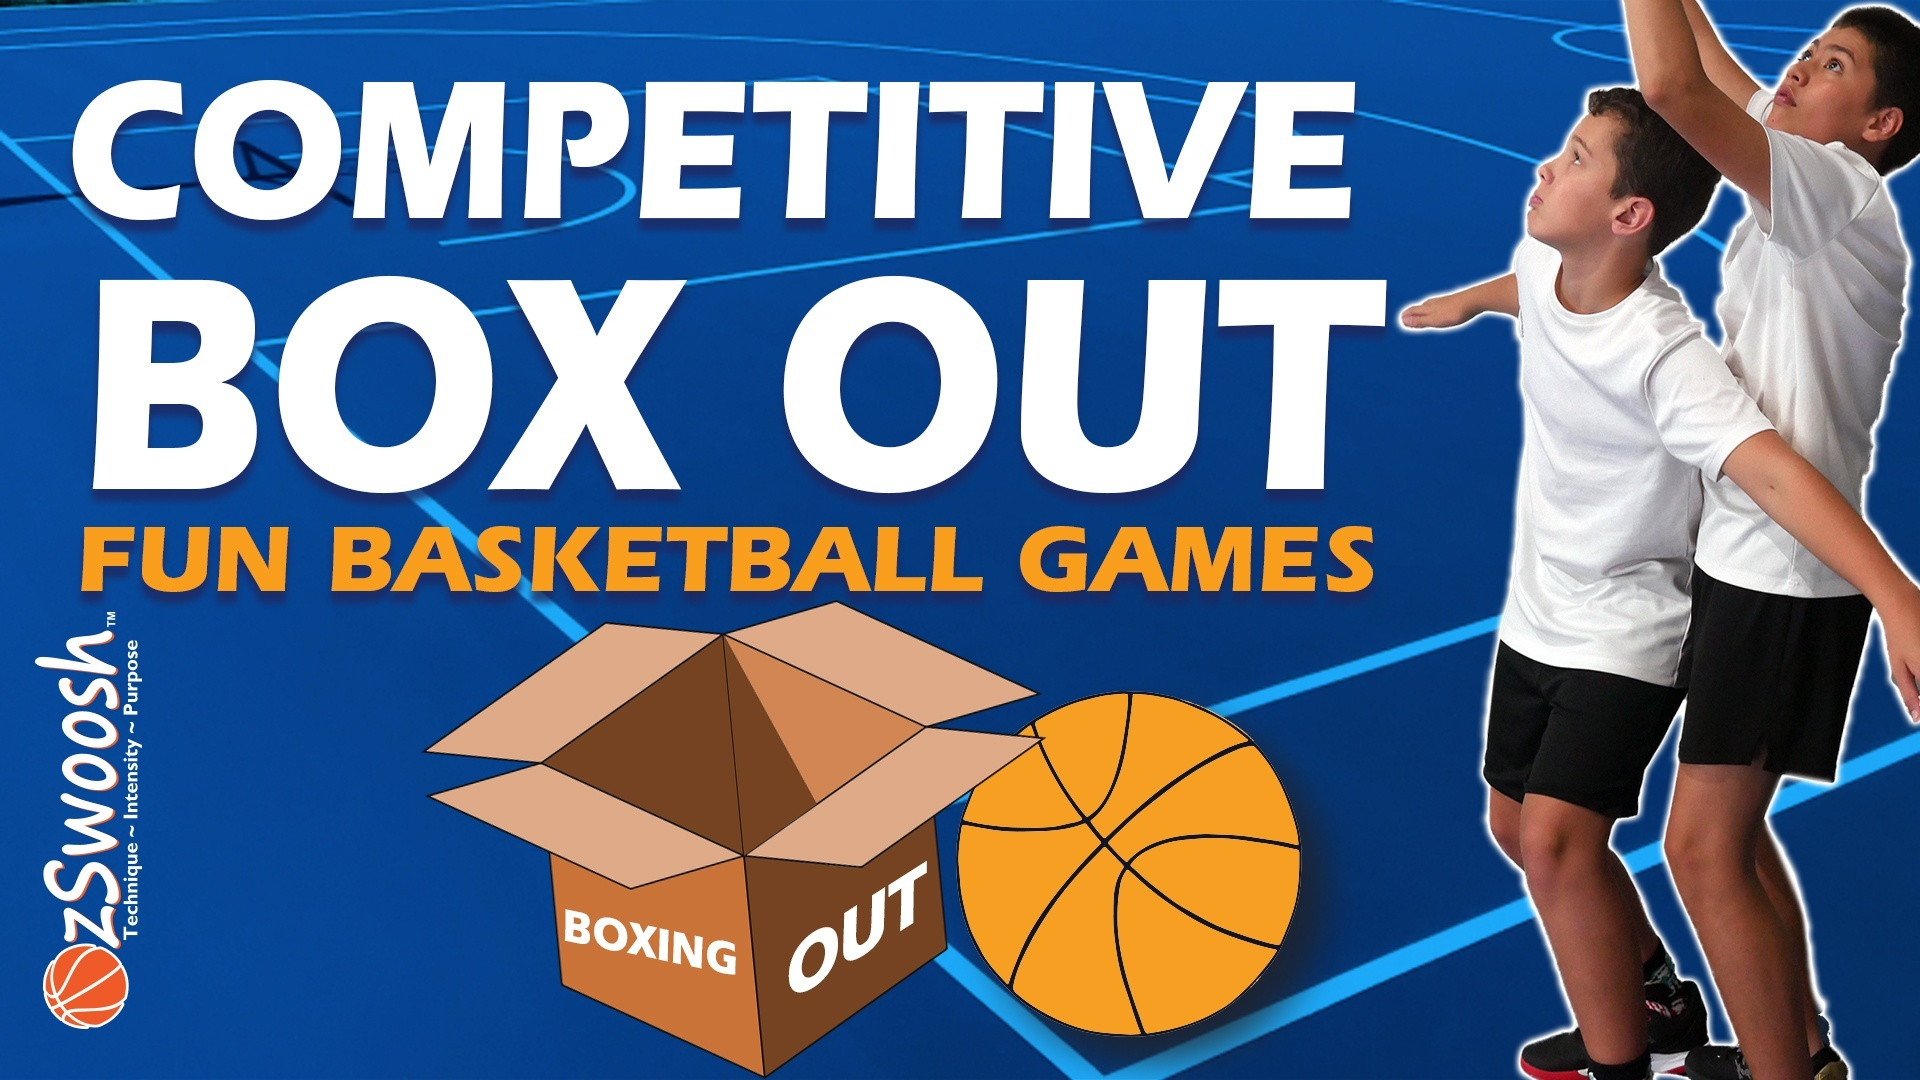 Fun Youth Basketball Rebounding Drill - Competitive Box Out